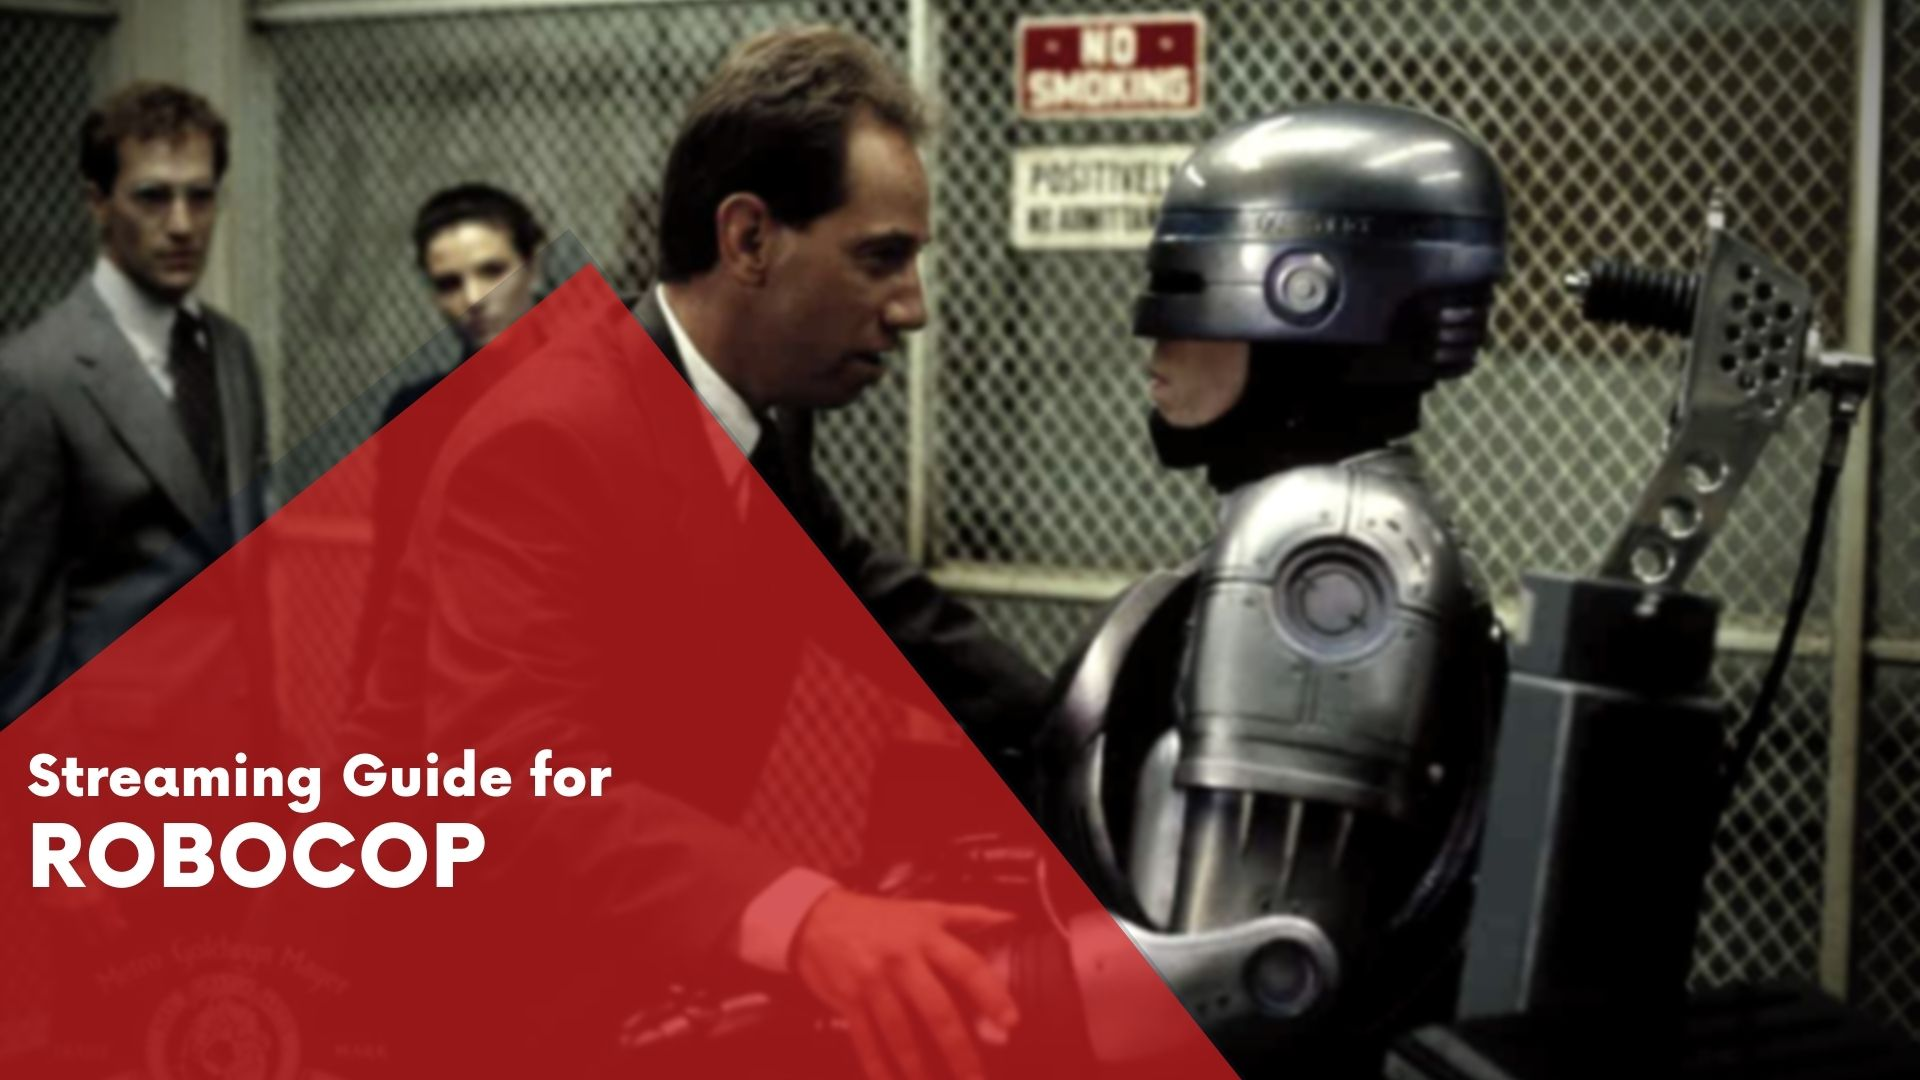 Answering if Robocop is available on Hulu